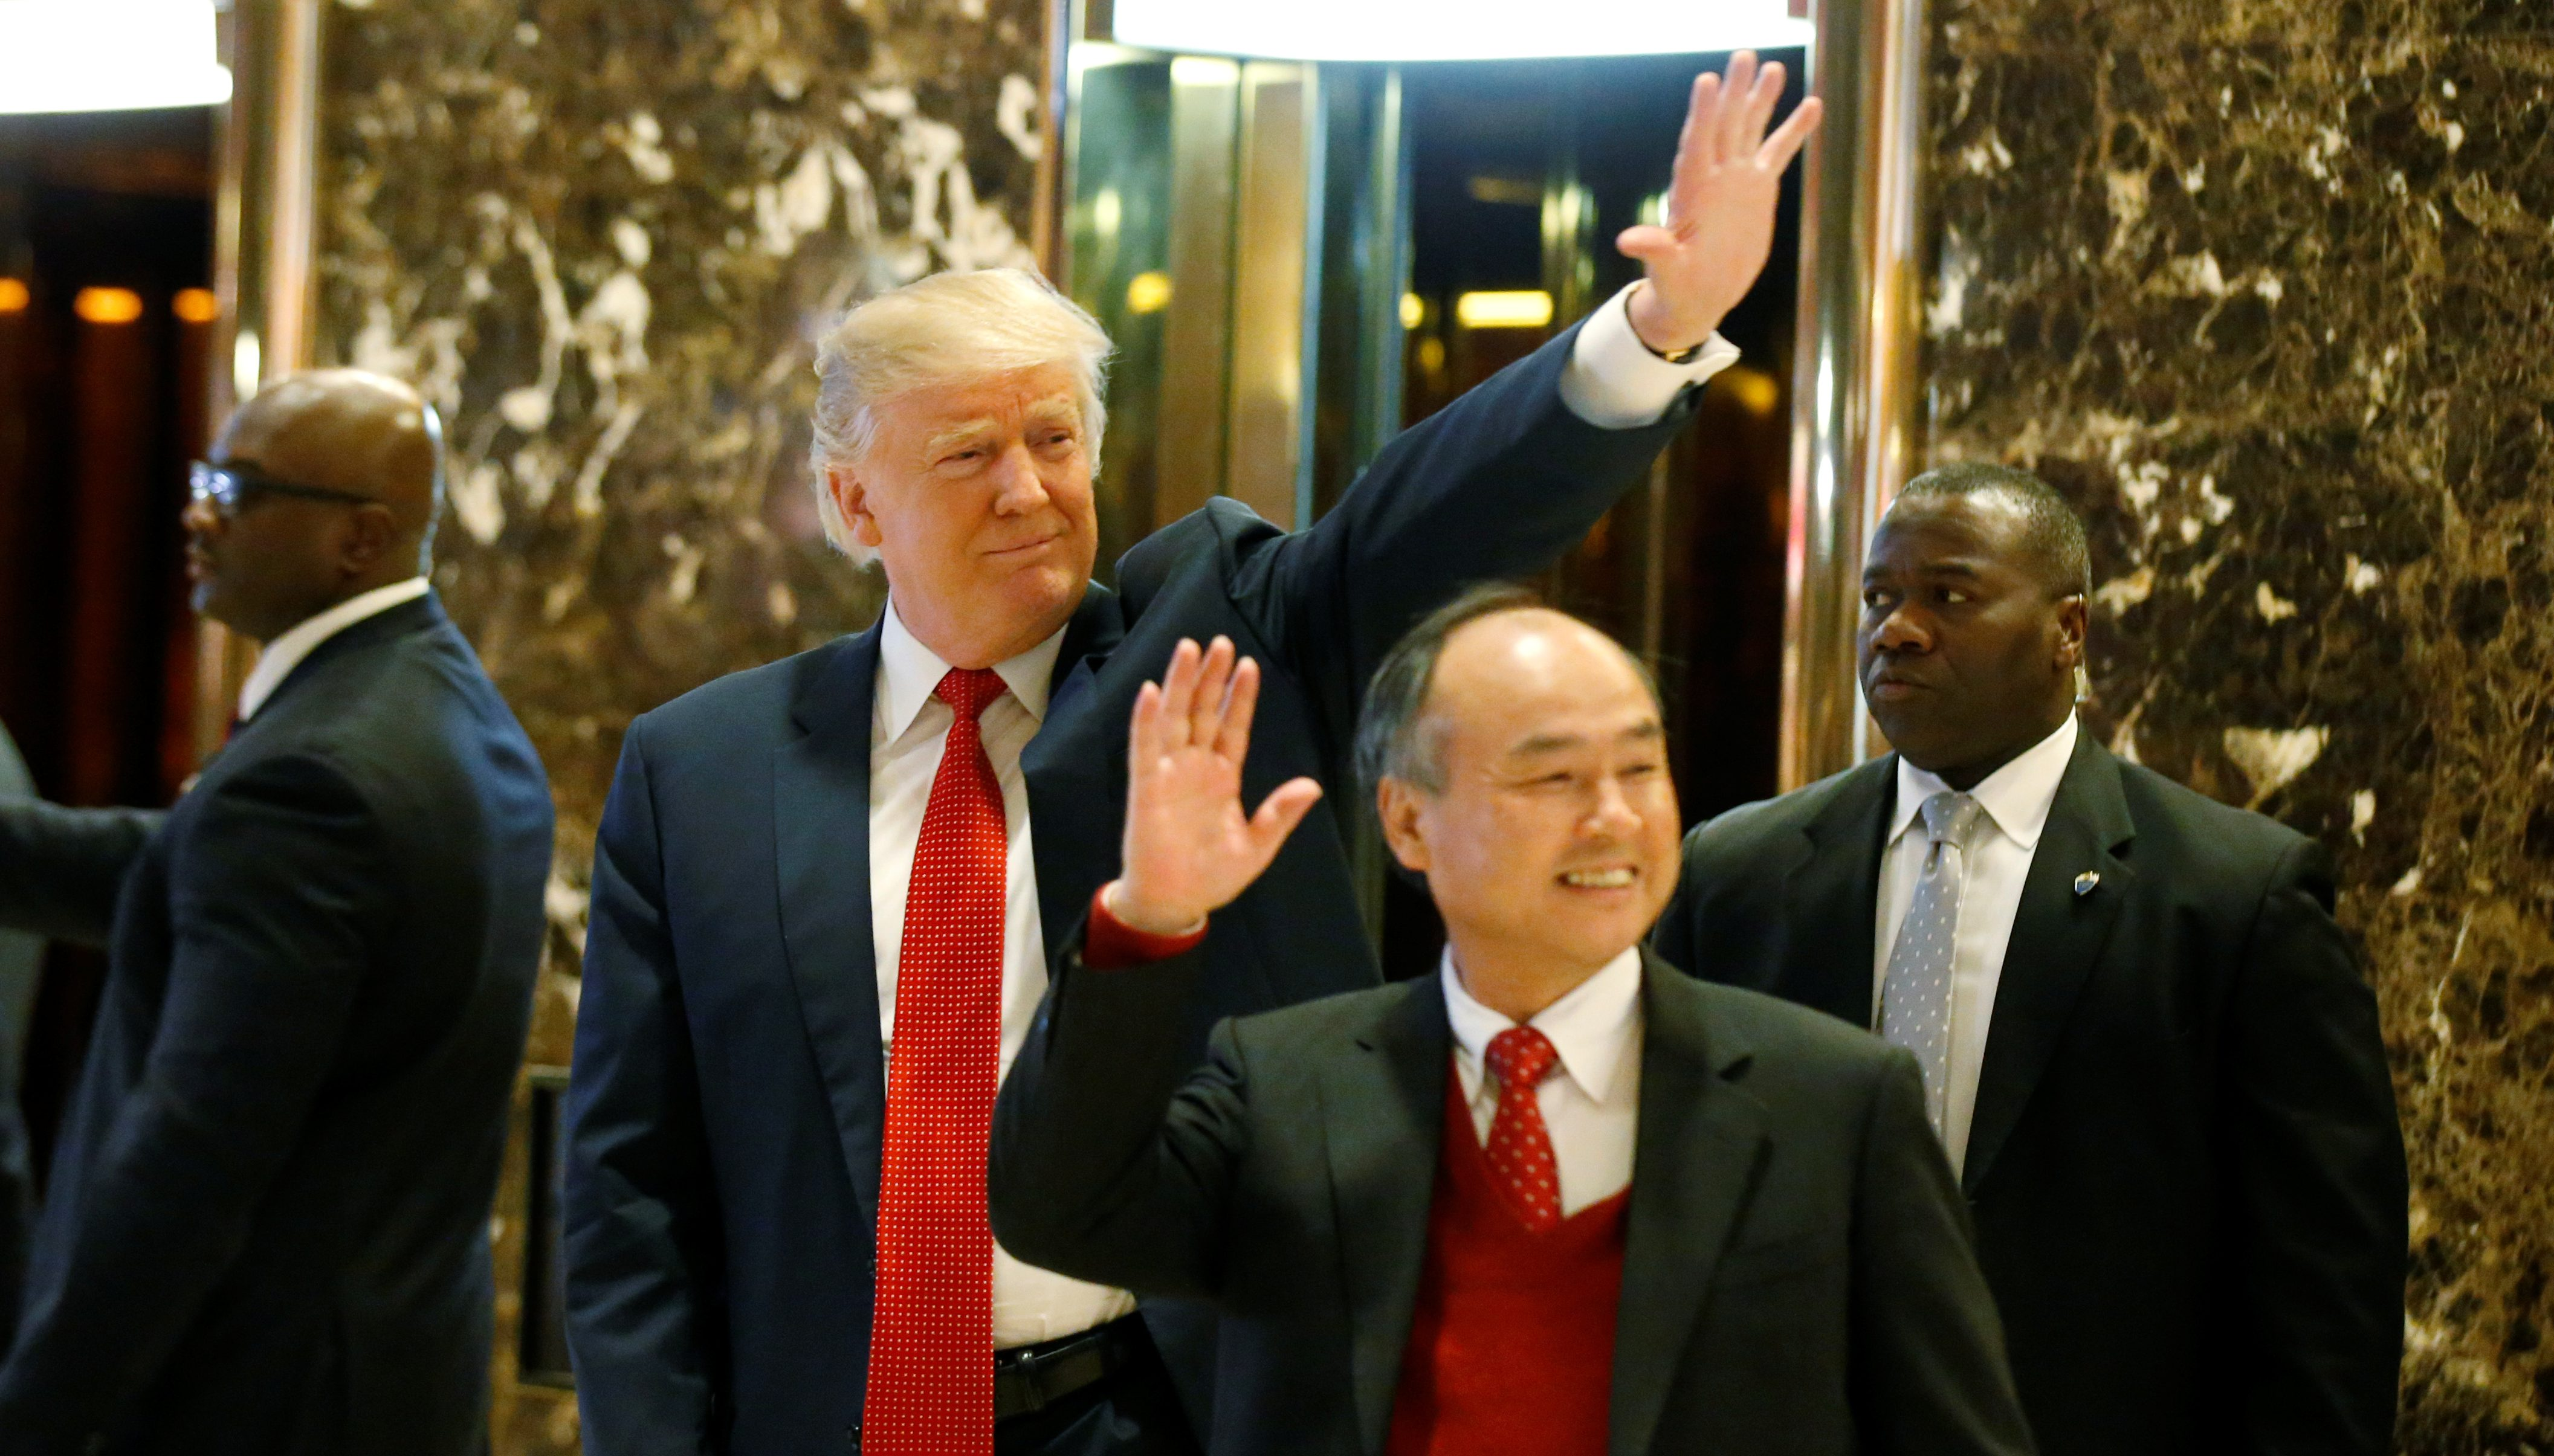 U.S. President-elect Donald Trump and Softbank CEO Masayoshi Son acknowledge guests after meeting at Trump Tower in Manhattan, New York City, U.S., December 6, 2016. REUTERS/Brendan McDermid - RTSUYAY